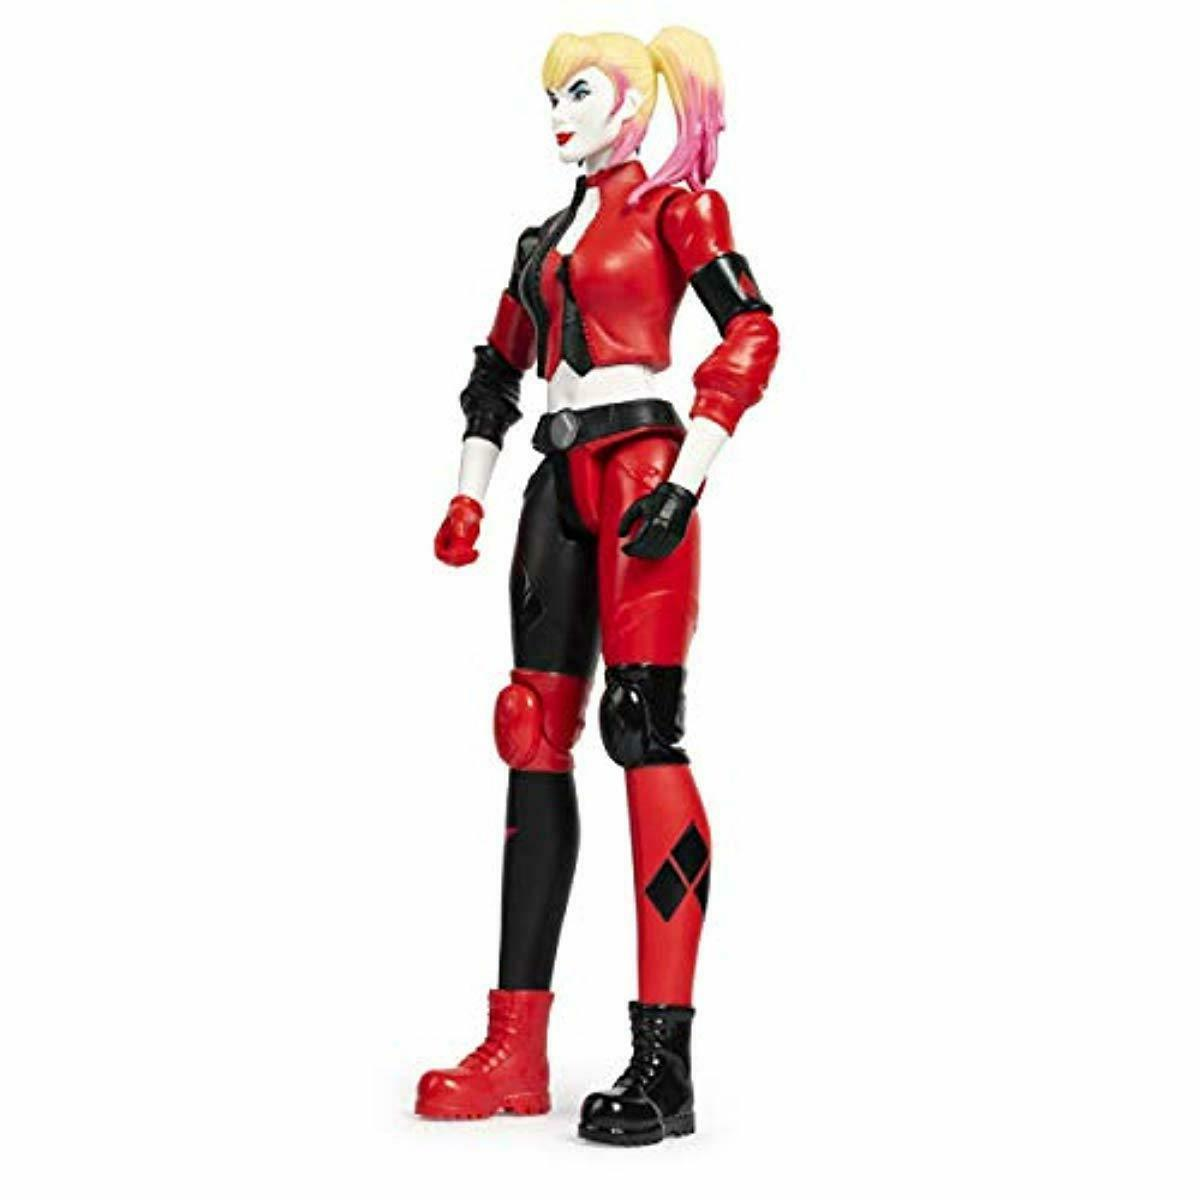 DC Superheroes 12-Inch Harley Figure Toy 1st